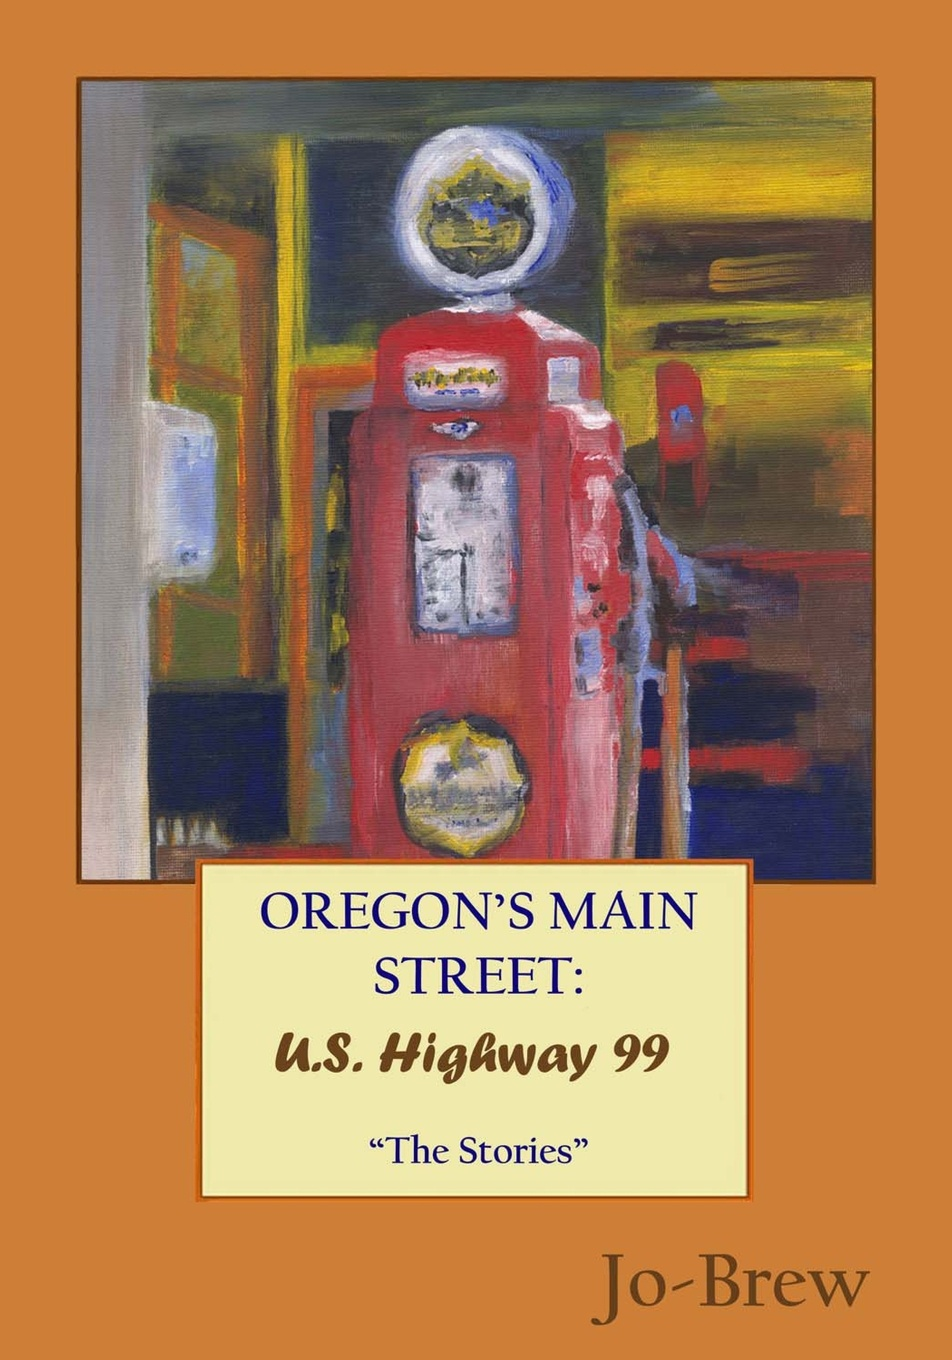 Jo- Brew OREGON'S MAIN STREET. U.S. Highway 99 The Stories